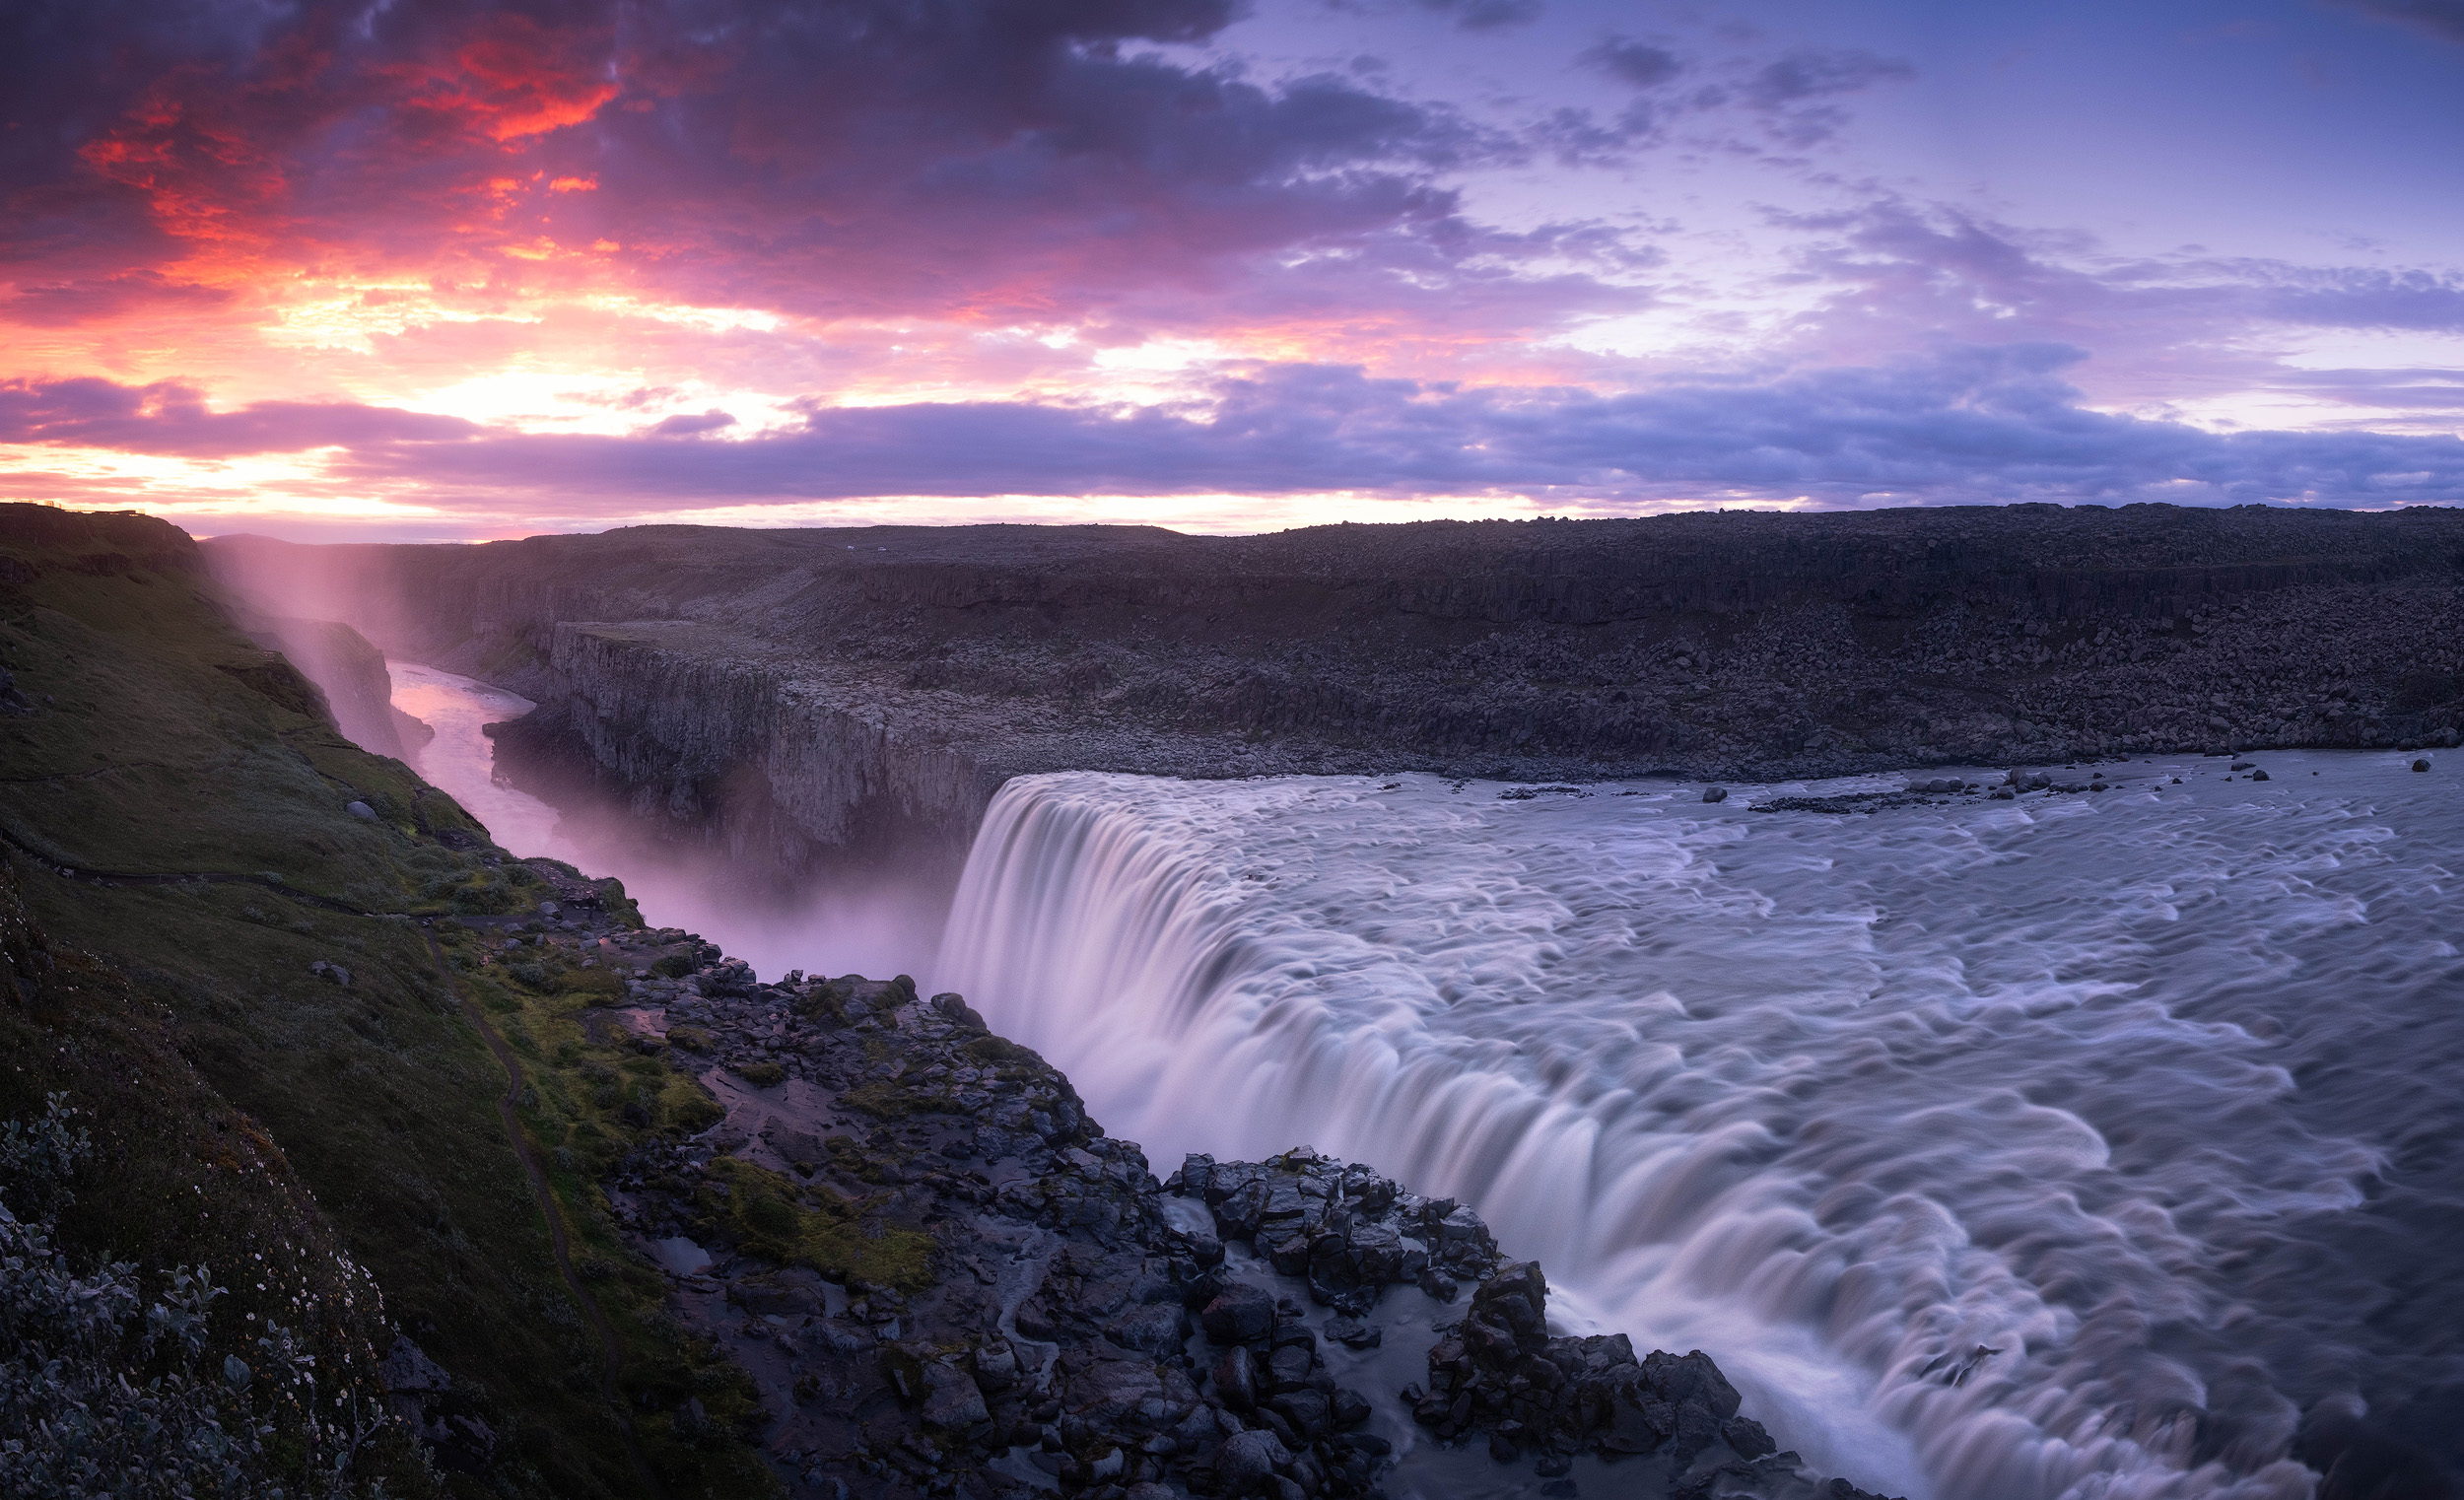 A panoramic shot of the sunrise at the Dettifoss falls